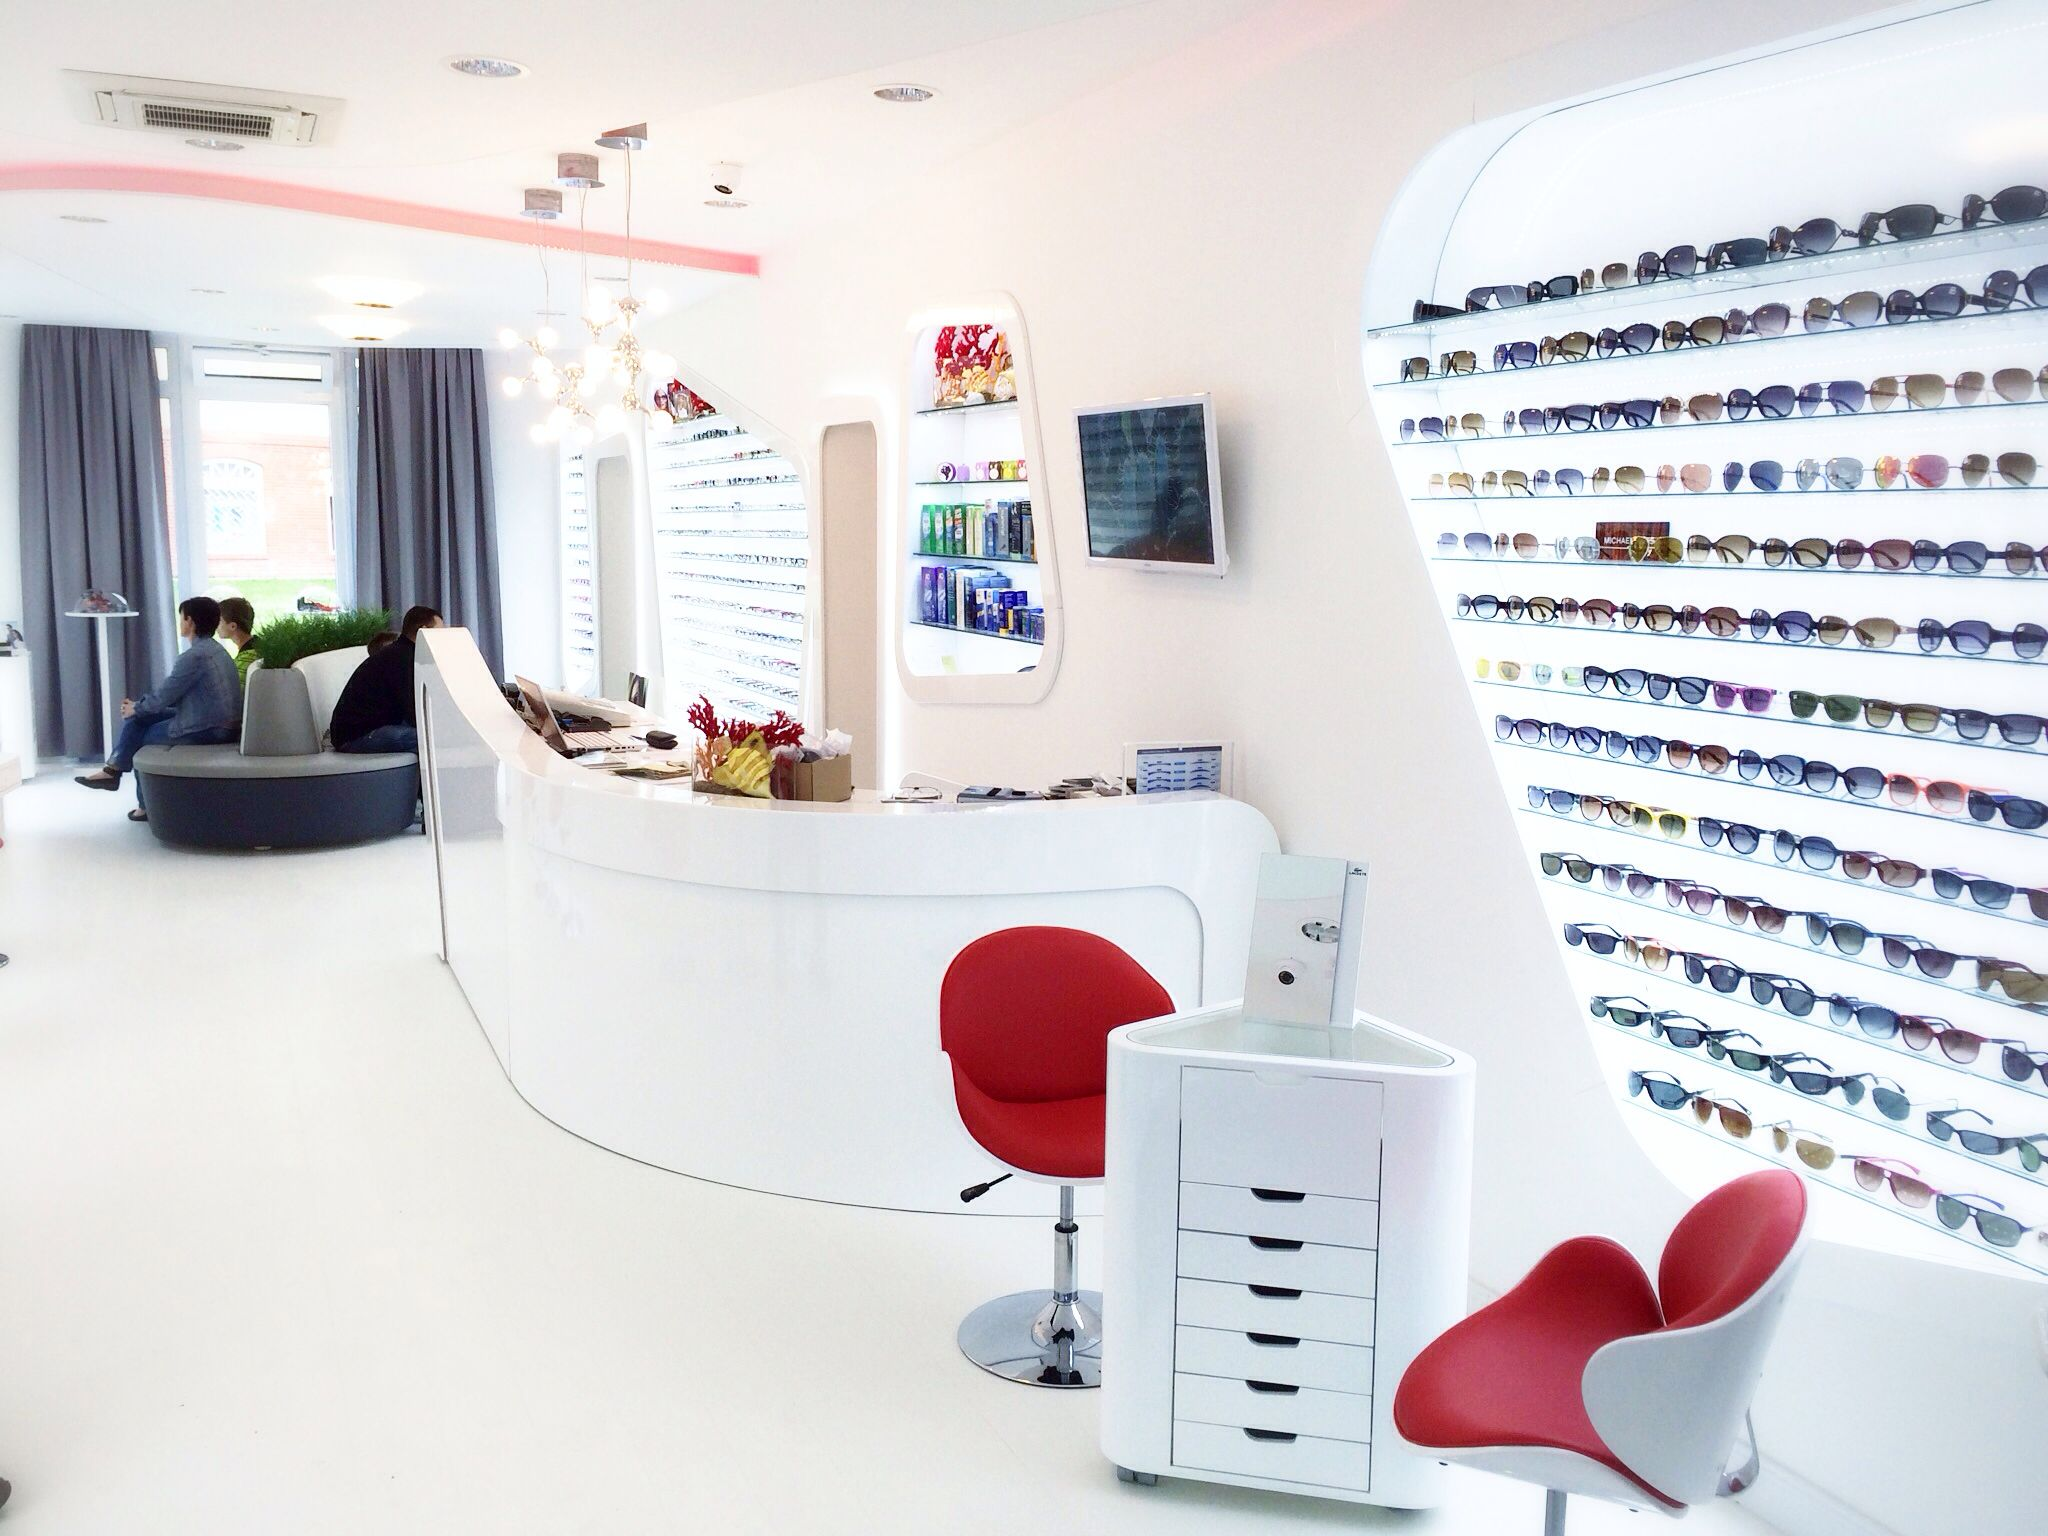 #optical #shop In #Dombovar , #Hungary #Shop #store #design